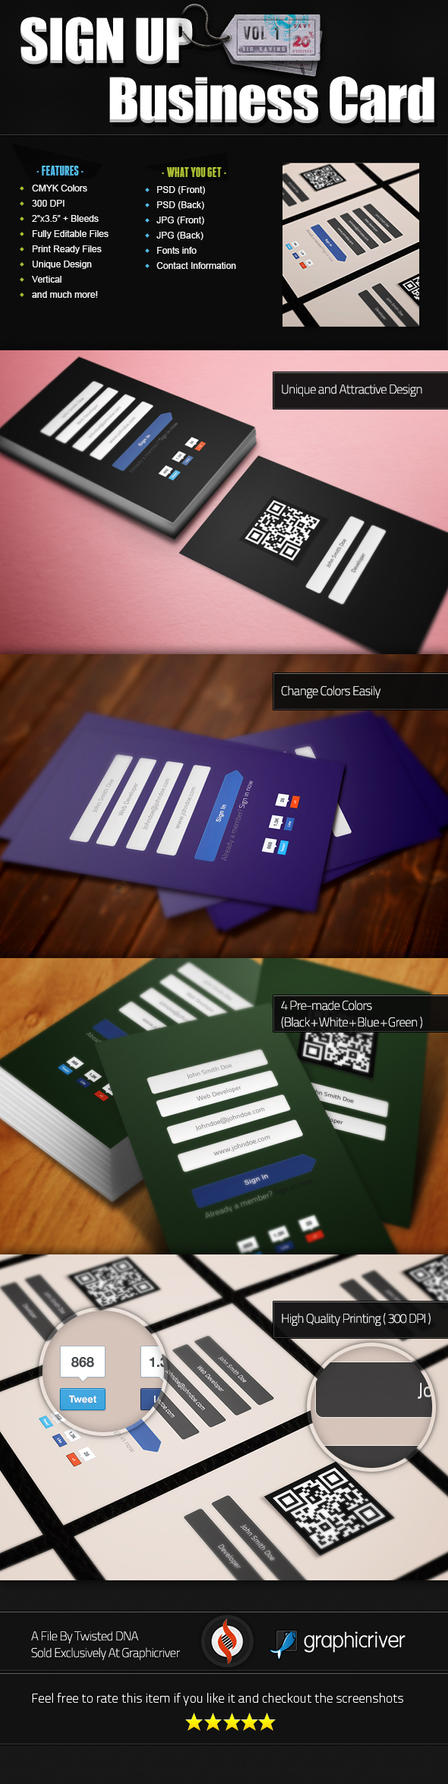 Sign Up Business Card Vol1 by Twist3dDNA